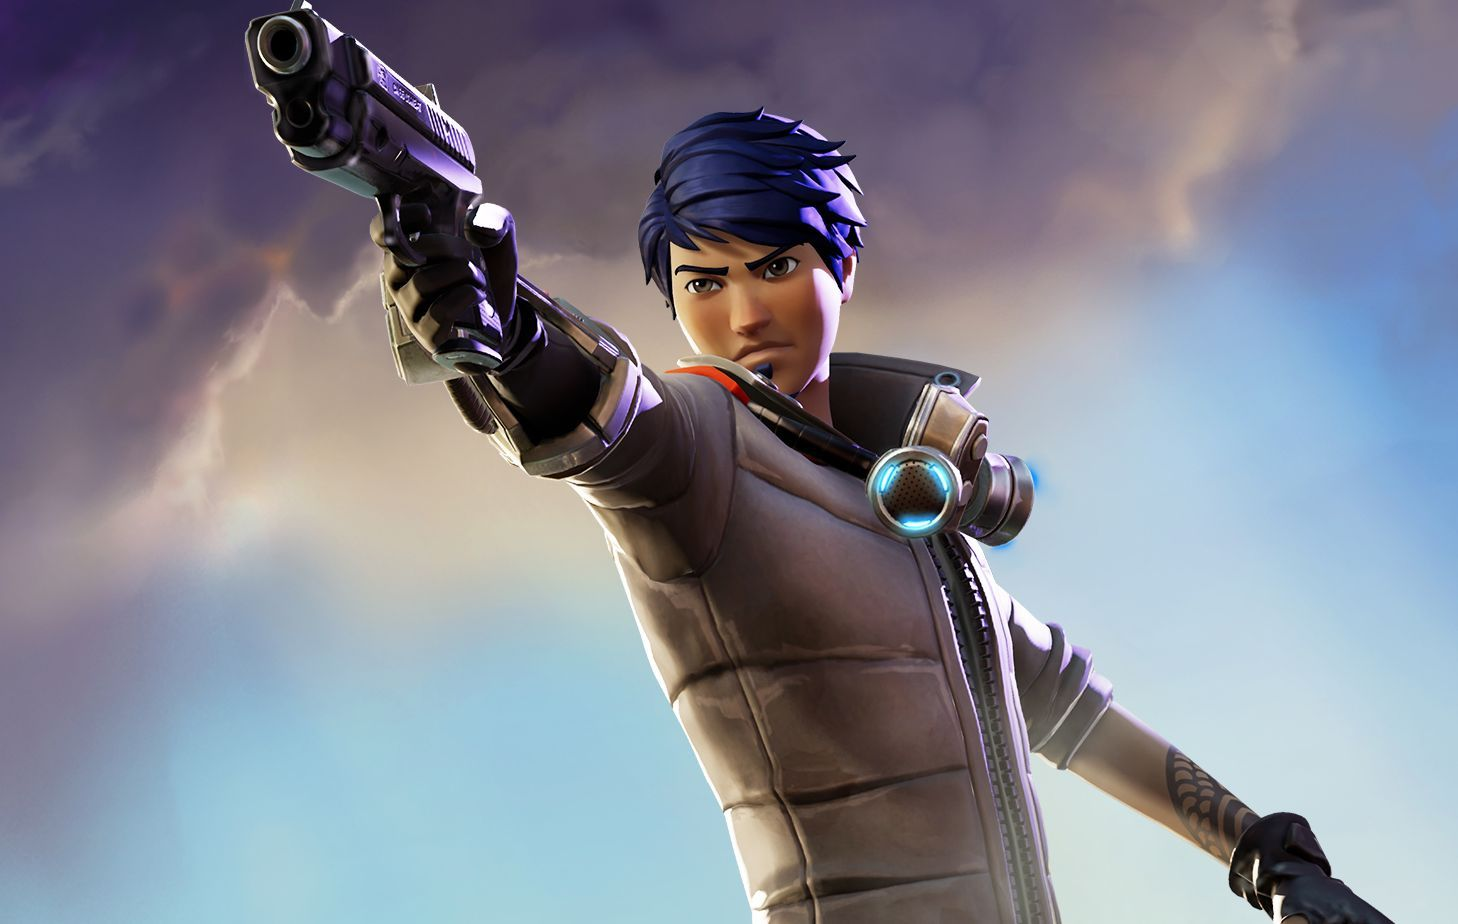 how to get save the world for free on fortnite